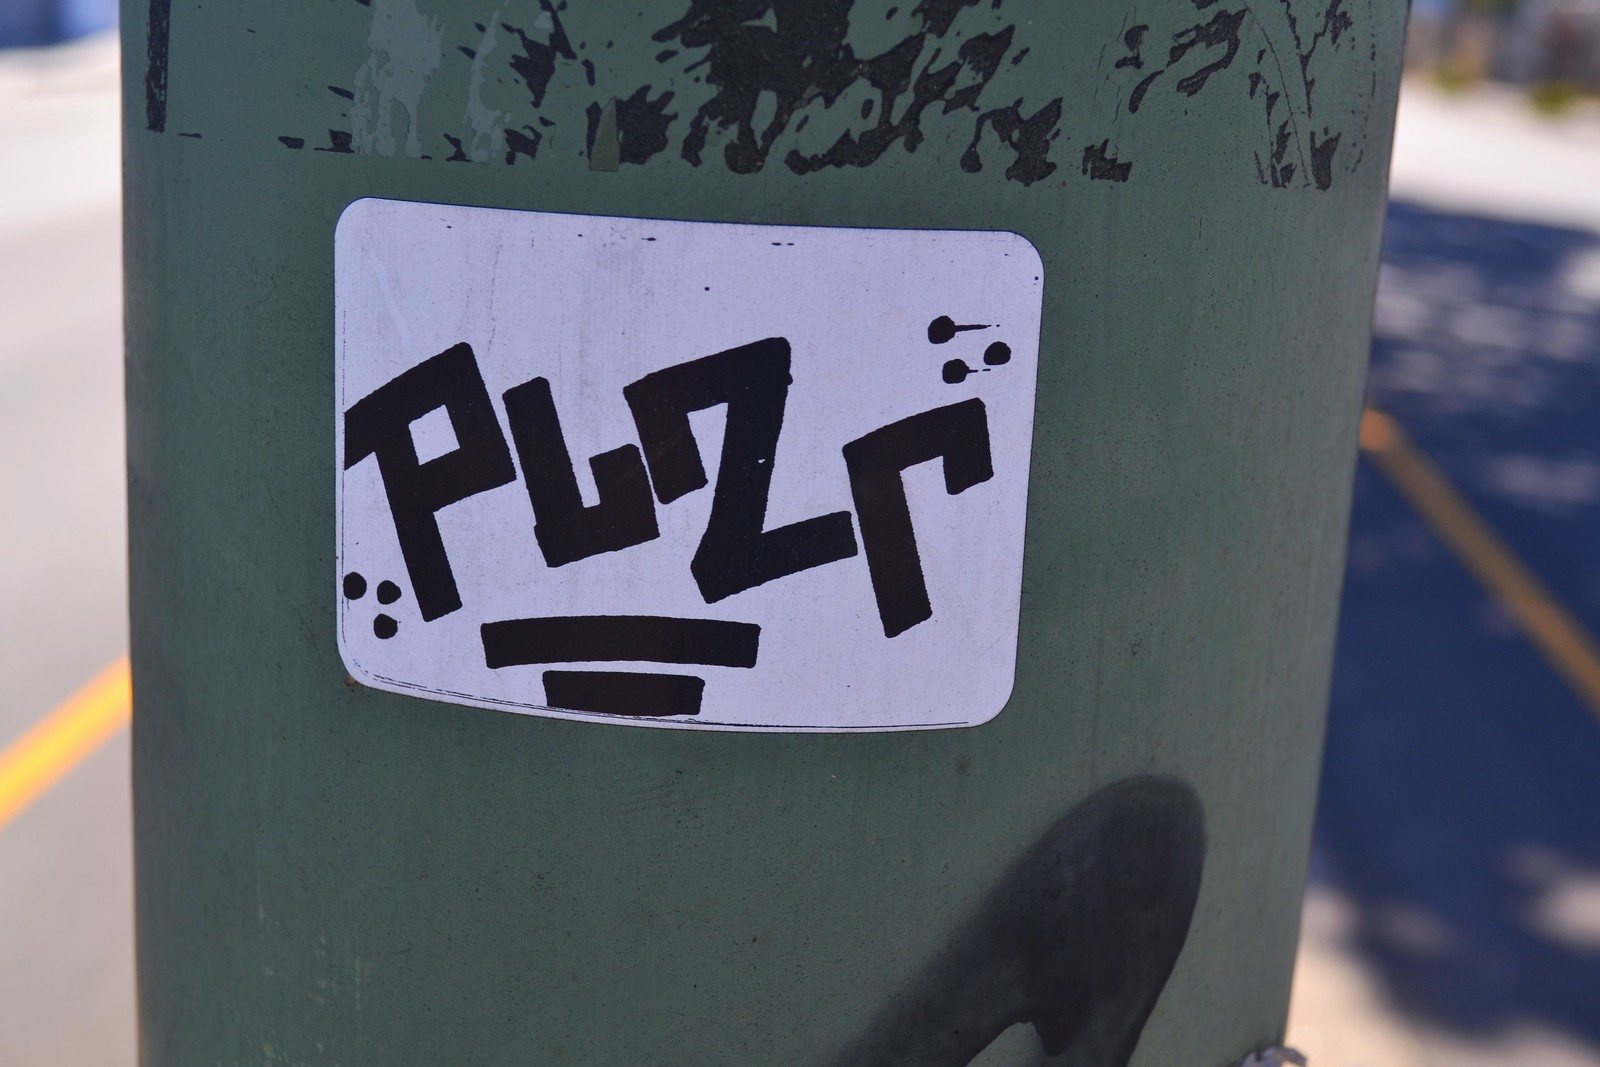 PLZR, Street Art, Graffiti, Oakland, Sticker, slap